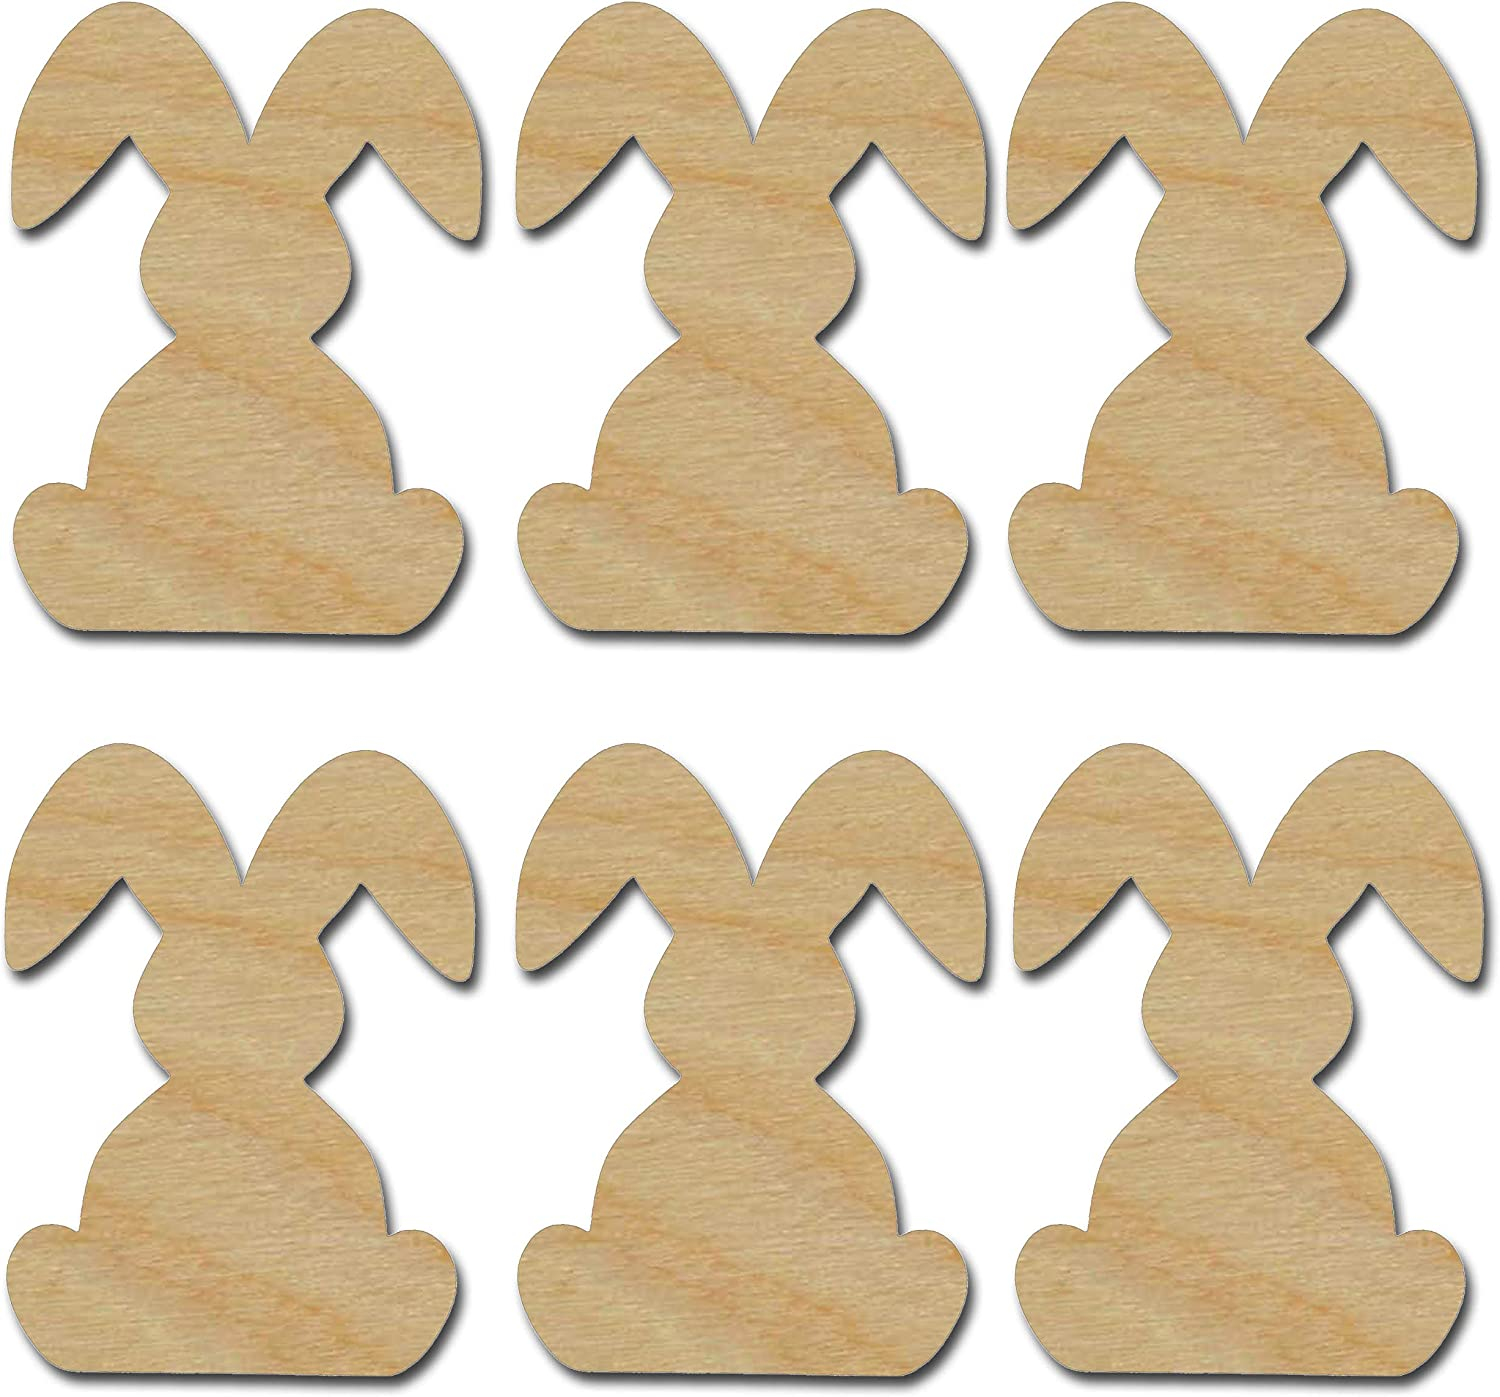 Rabbit Style 3 BUNNY Unfinished Wood Shape Cutout USA Made Various Sizes Easter